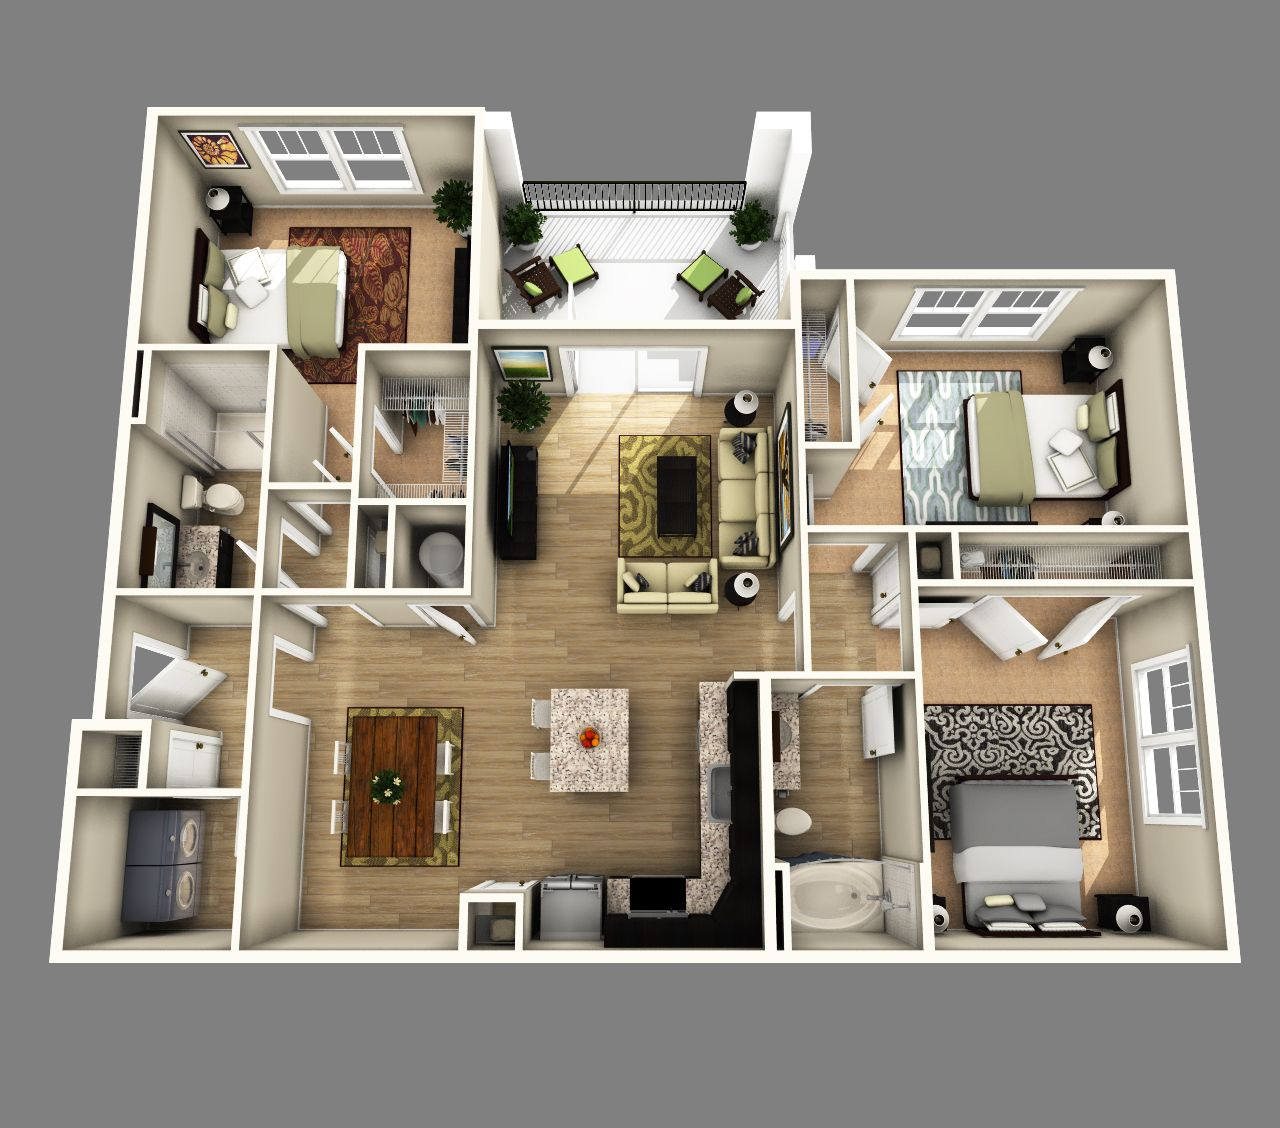 3 bedrooms apartments for Apartment layout planner